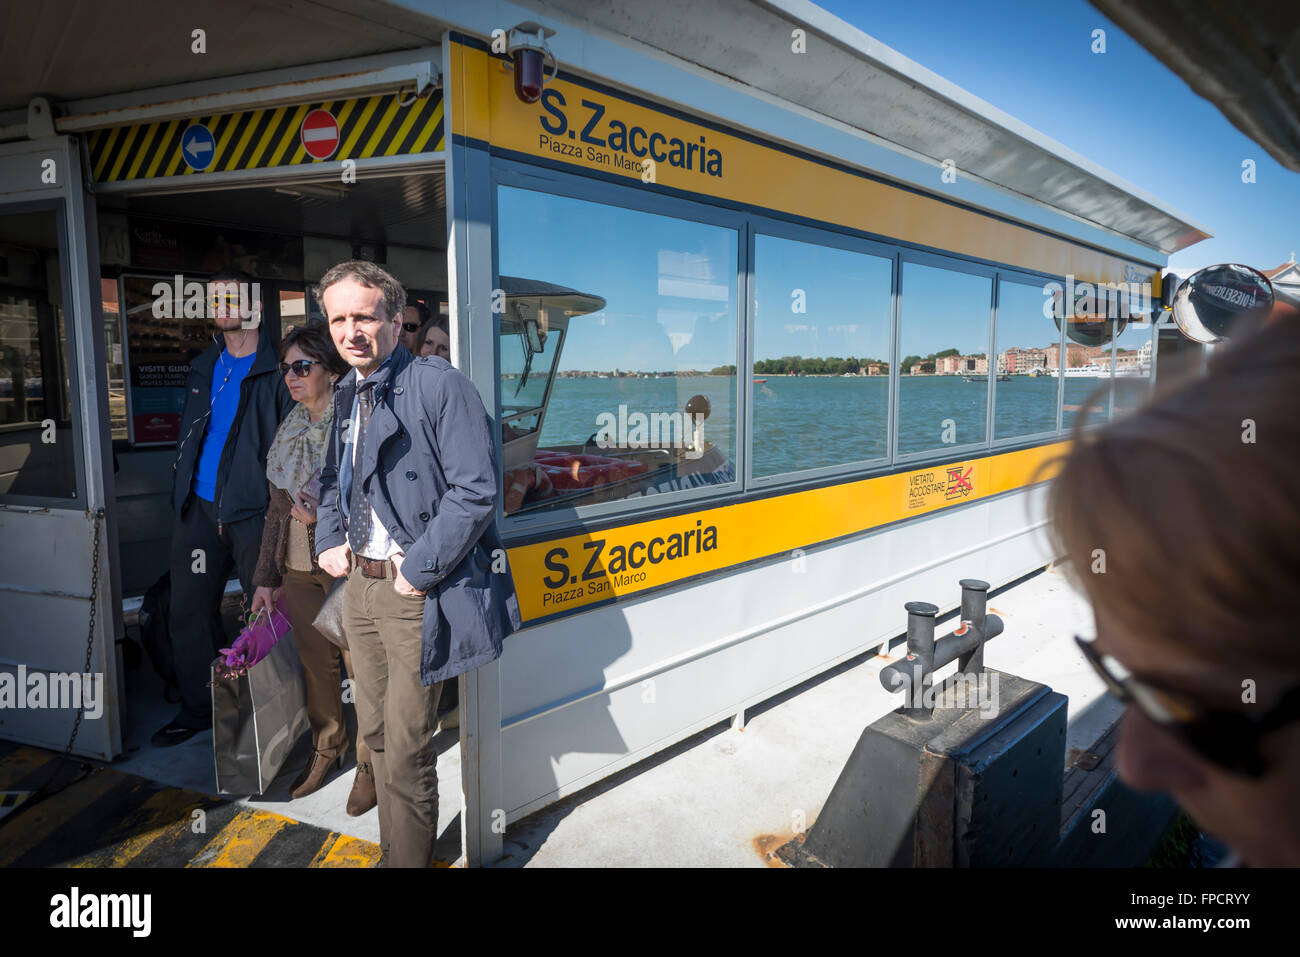 Male and female passengers waiting for people leaving the ferry boat onto the platform at S.Zaccaria in Canal Grande - Stock Image